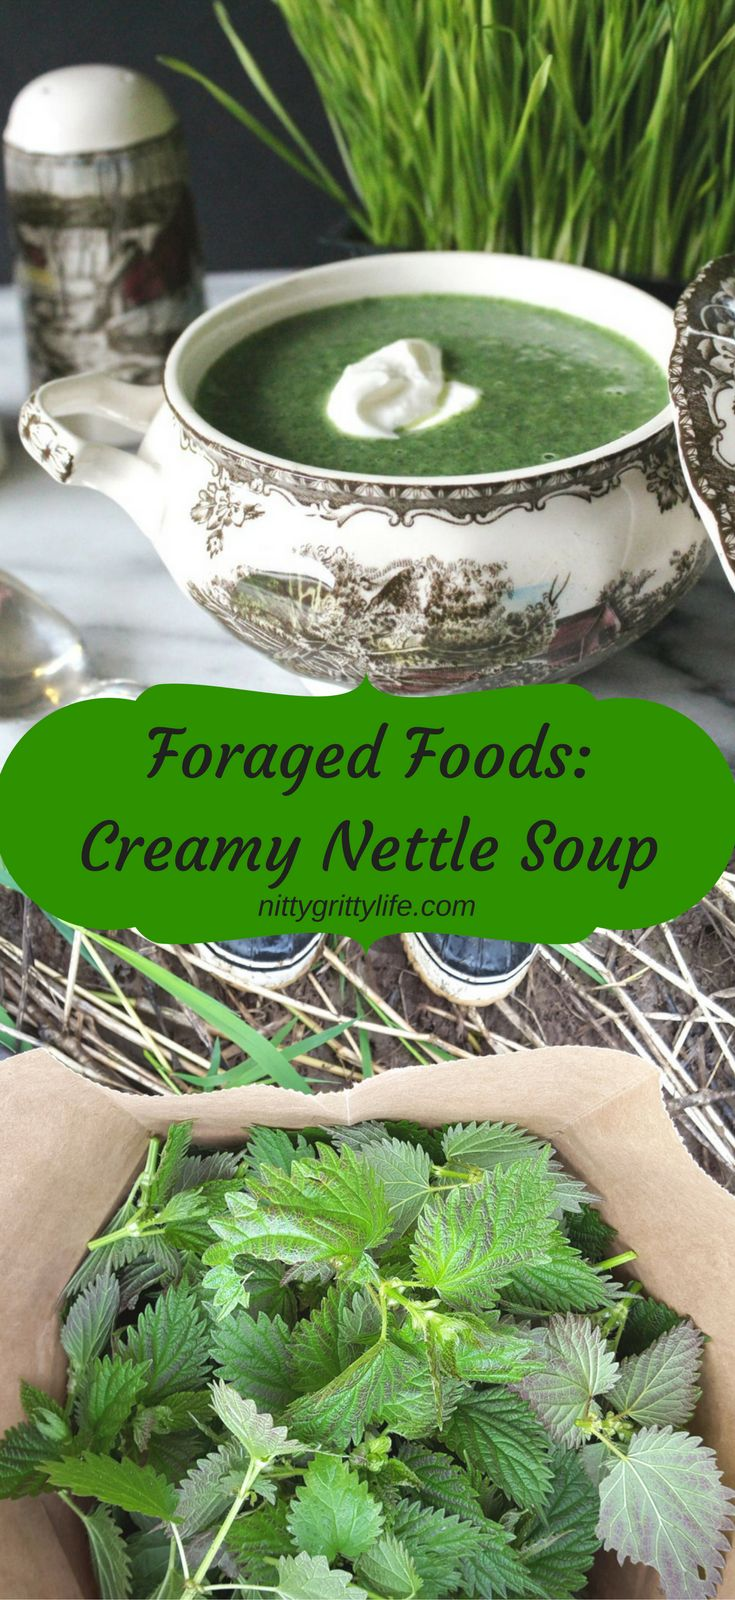 Foraged Foods Creamy Nettle Soup